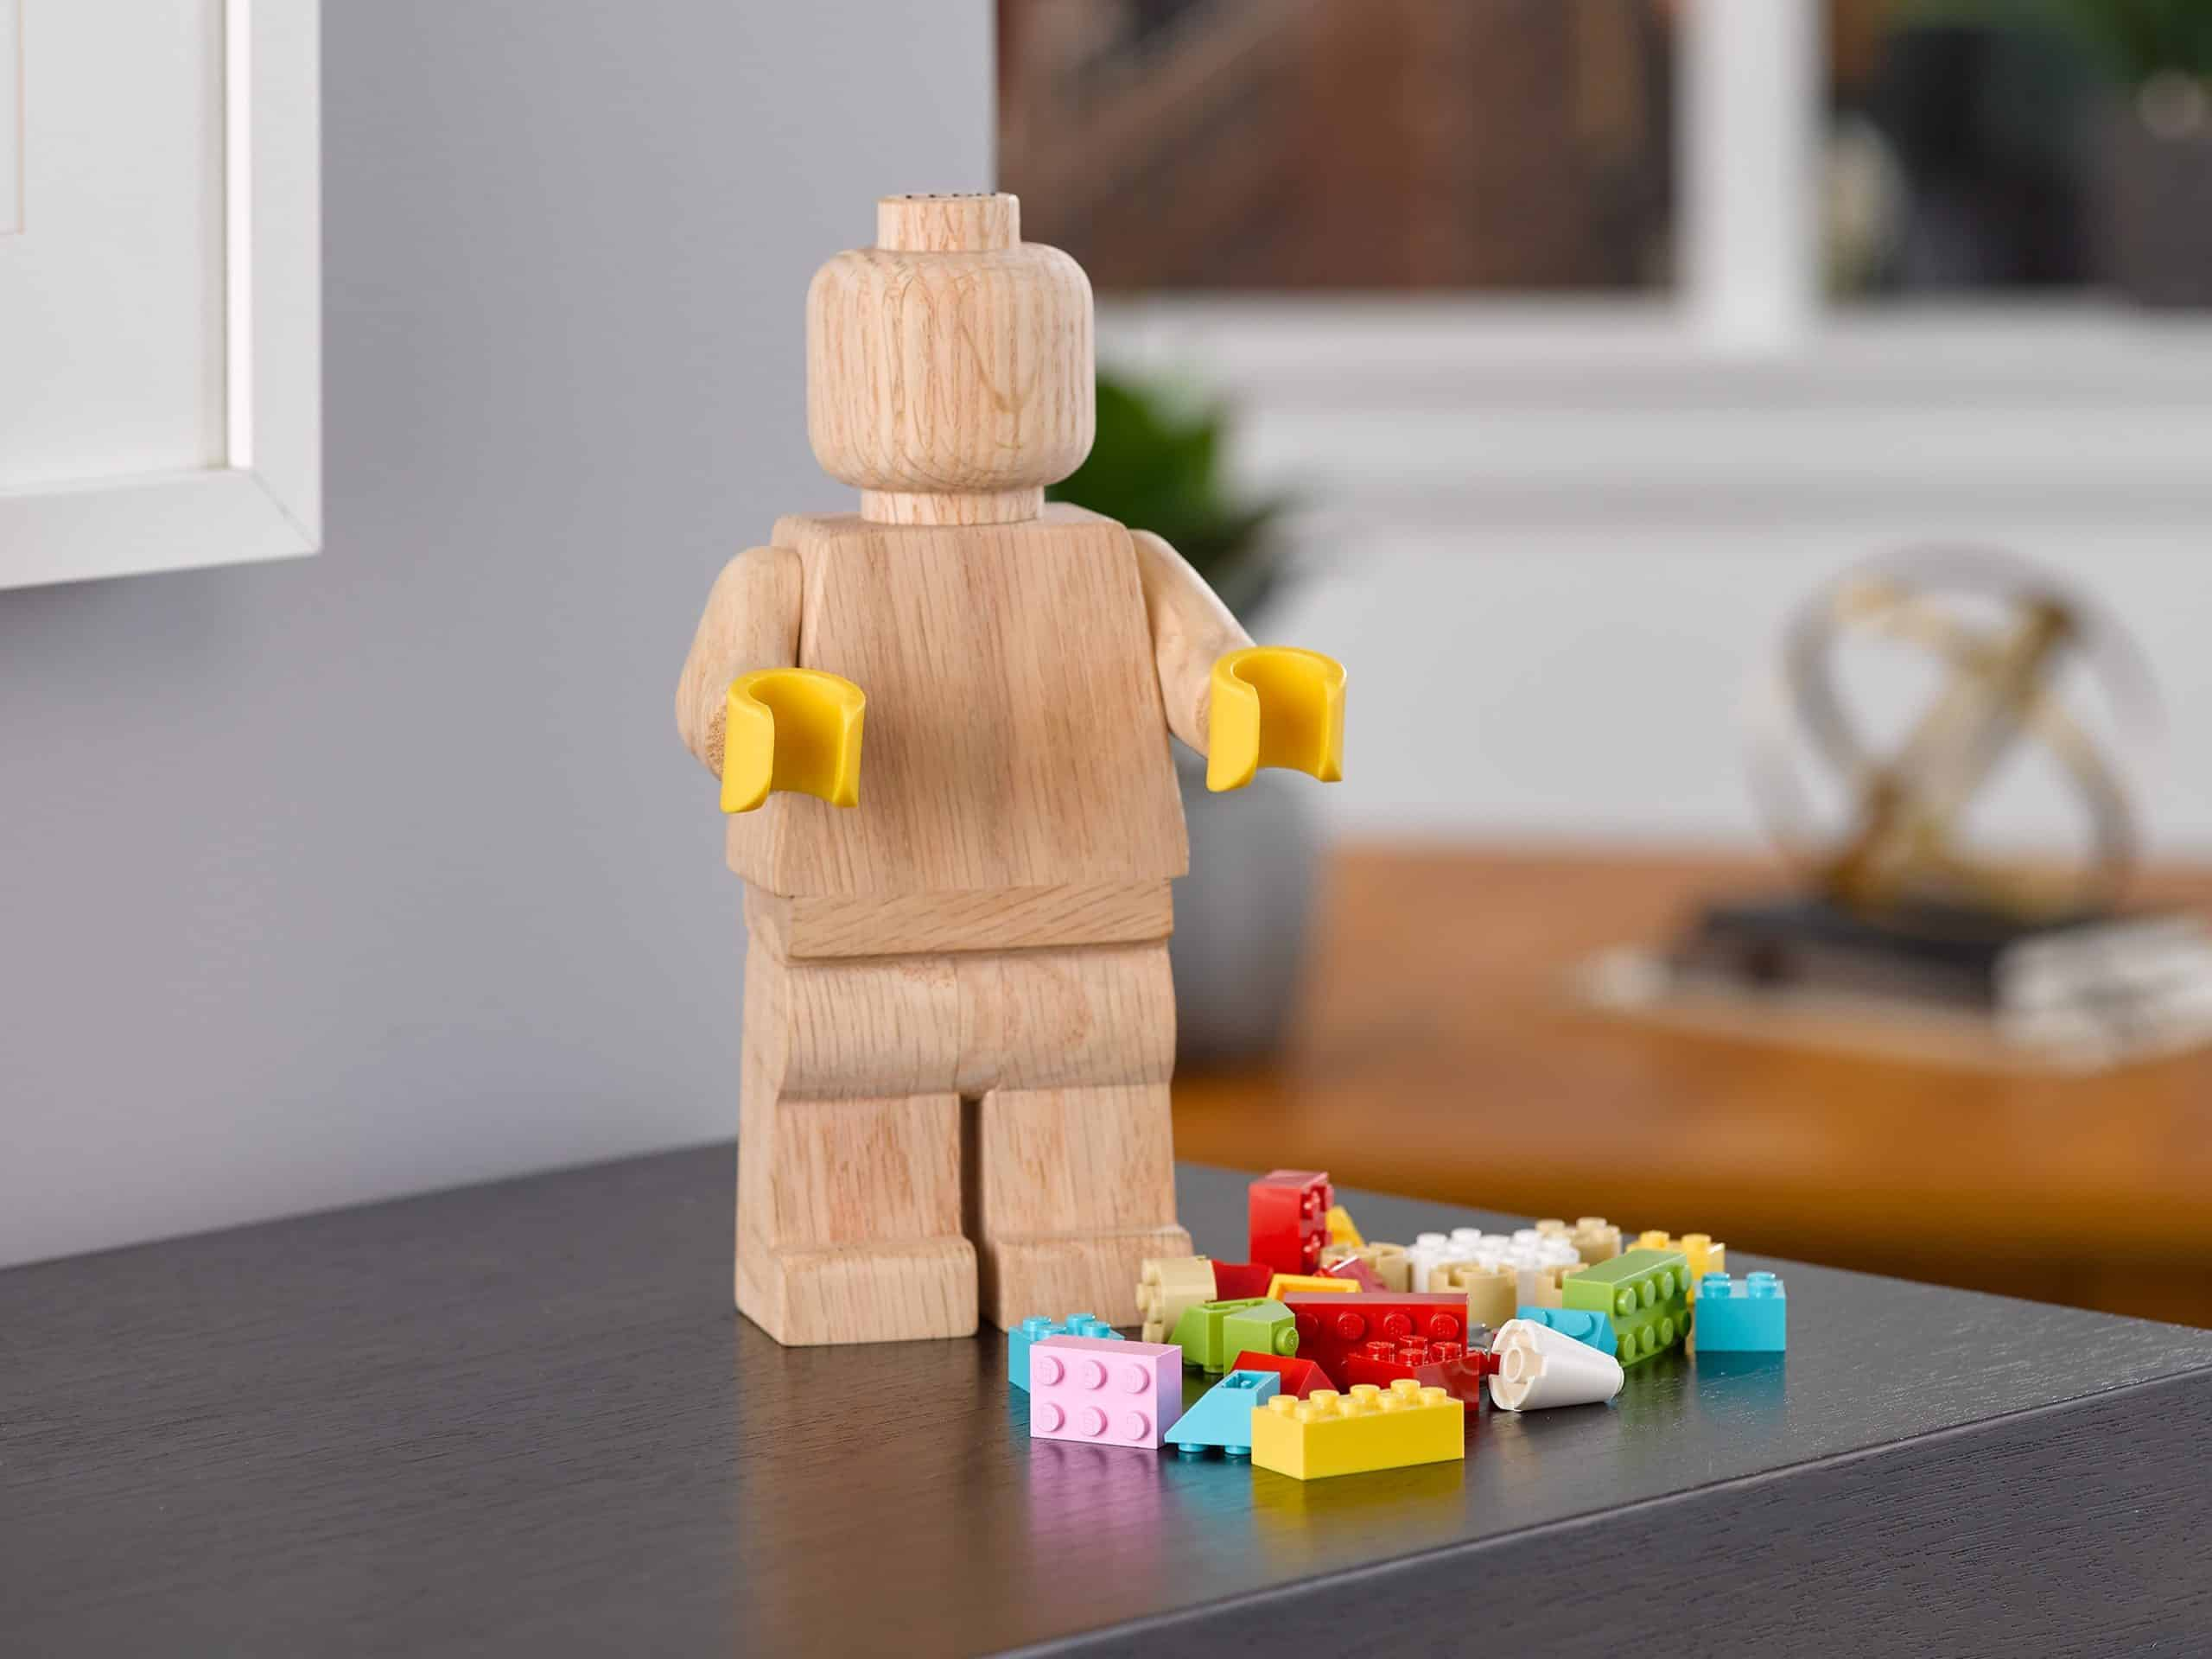 lego 853967 wooden minifigure scaled